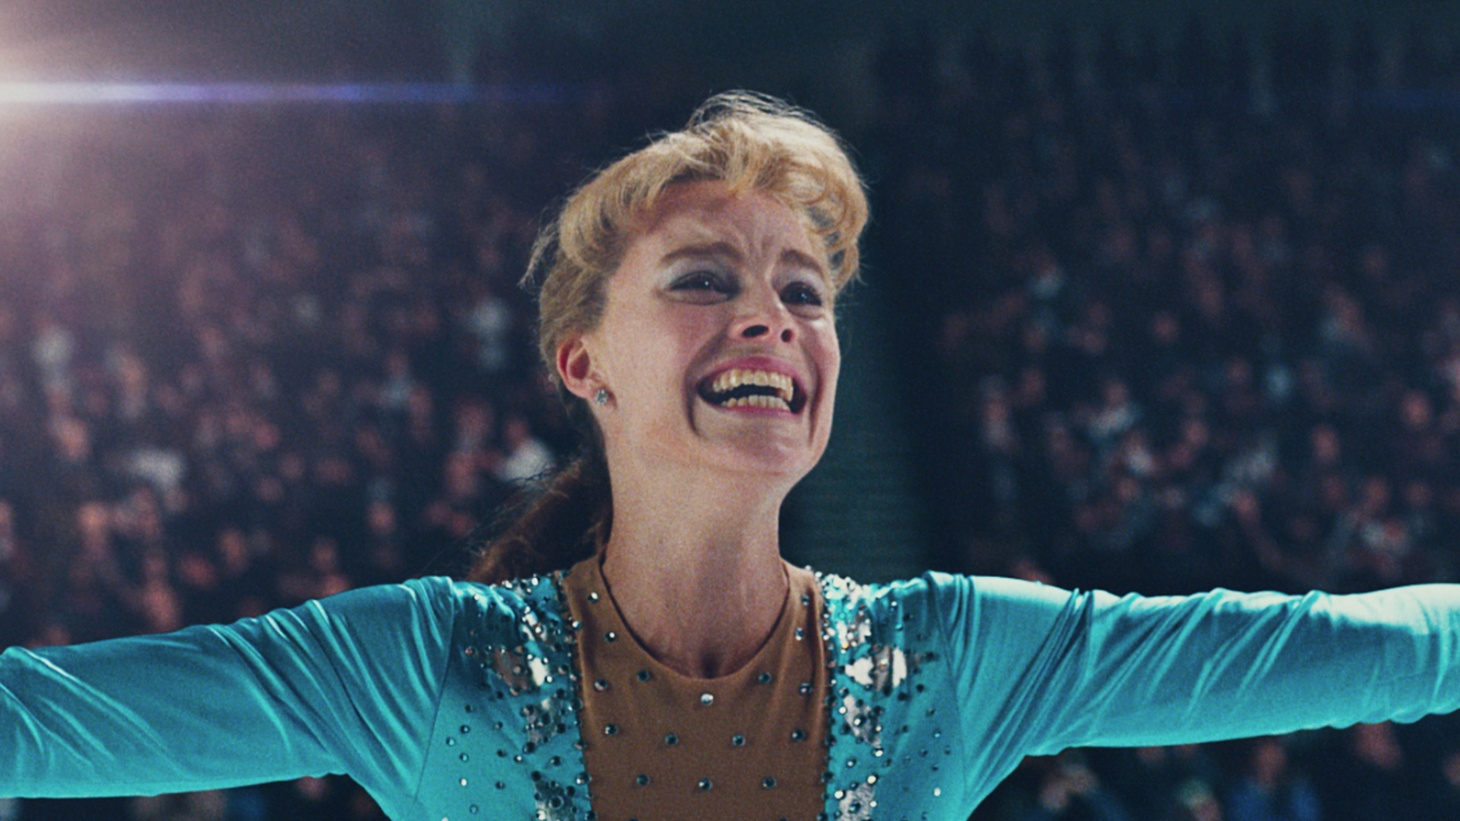 Impressive in its own right, the movieI, Tonya is also a cure for all those feel-good films about innately noble athletes who manage to triumph over impossible odds.